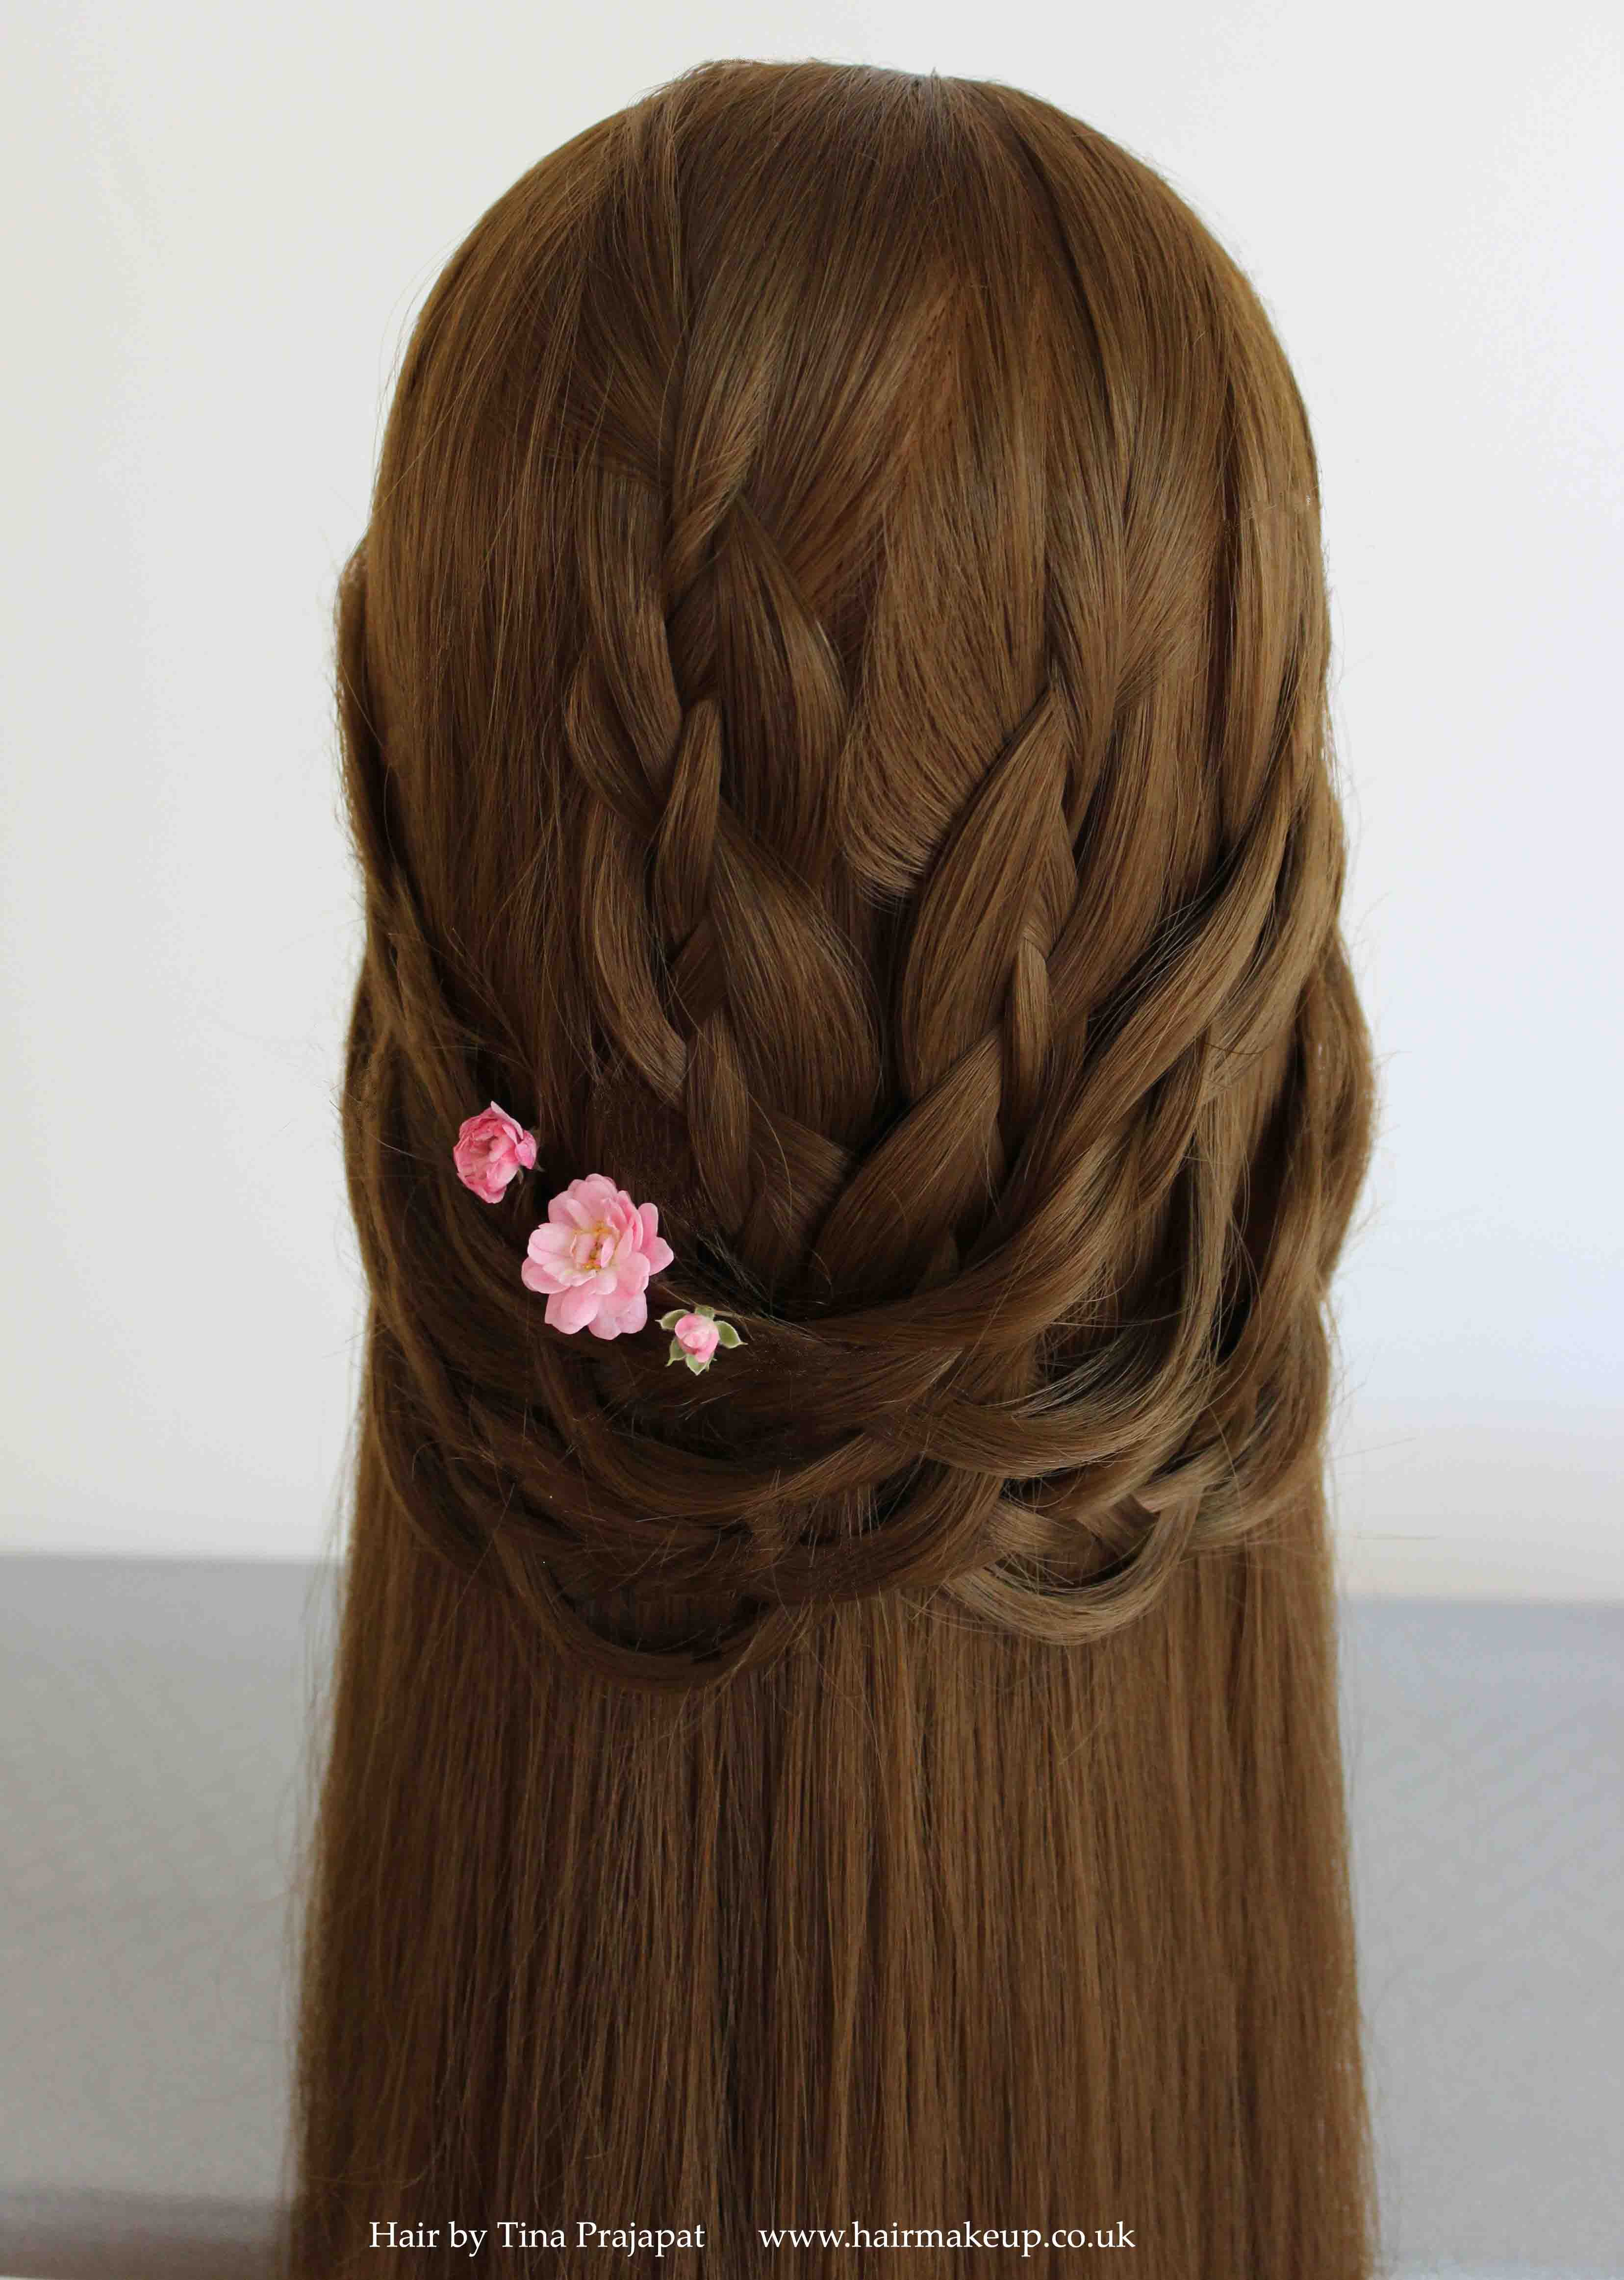 These loosely draped braids create a soft half up bridal hairstyle.